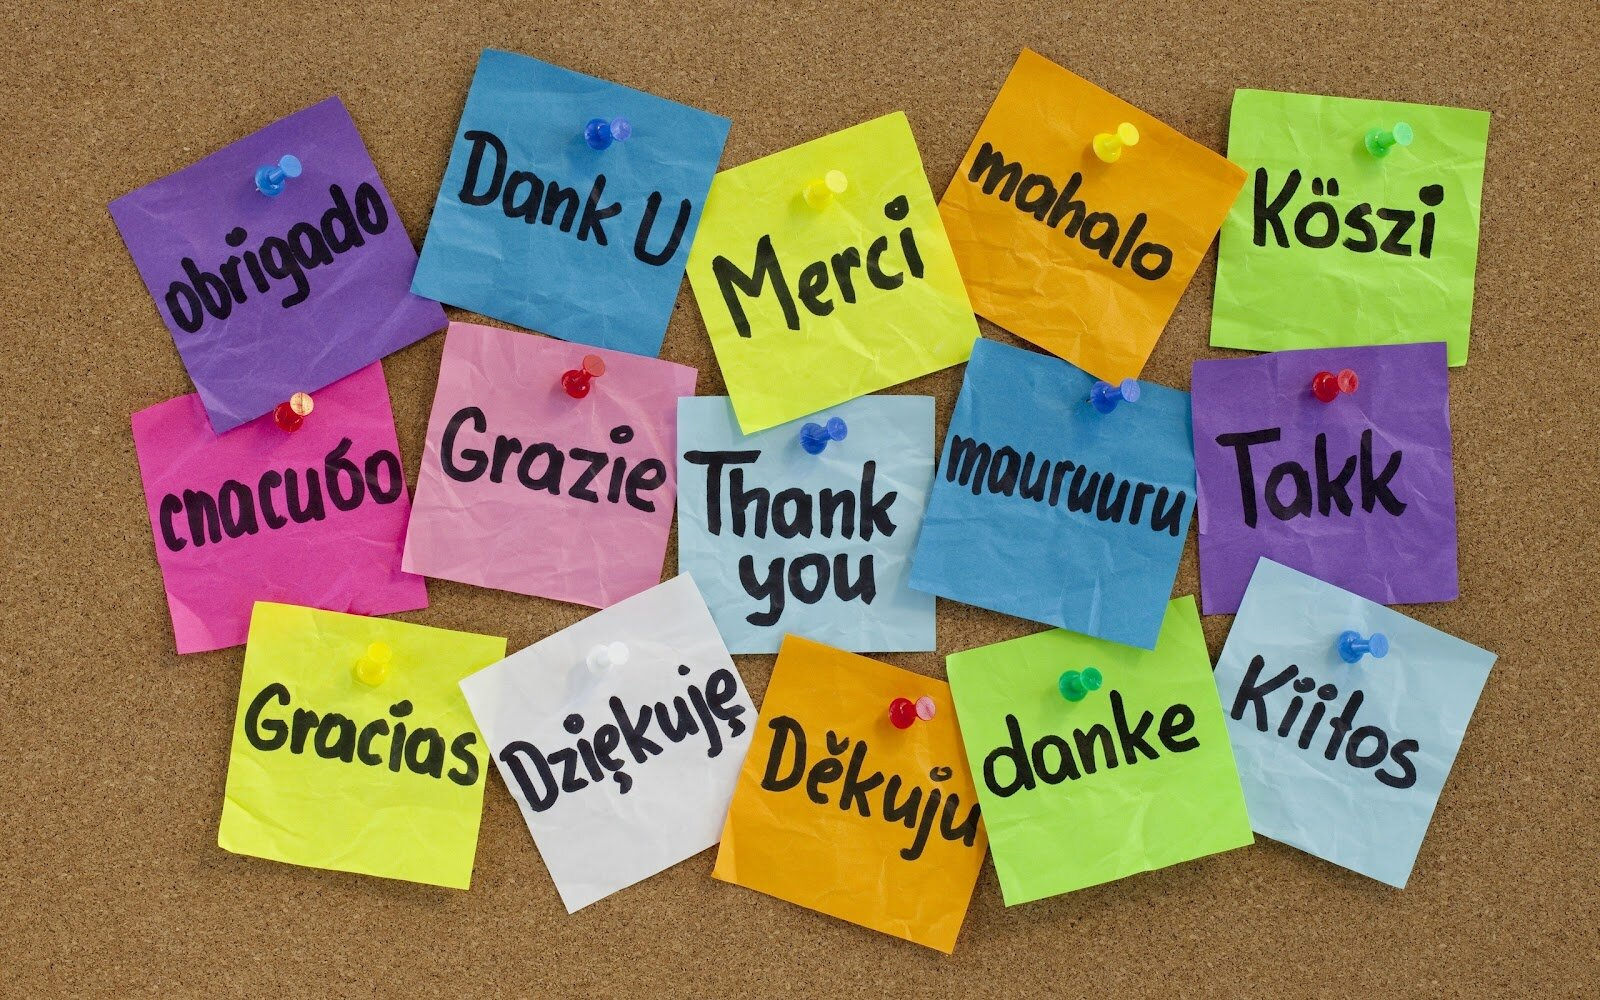 The importance of a THANK YOU goes a long way!